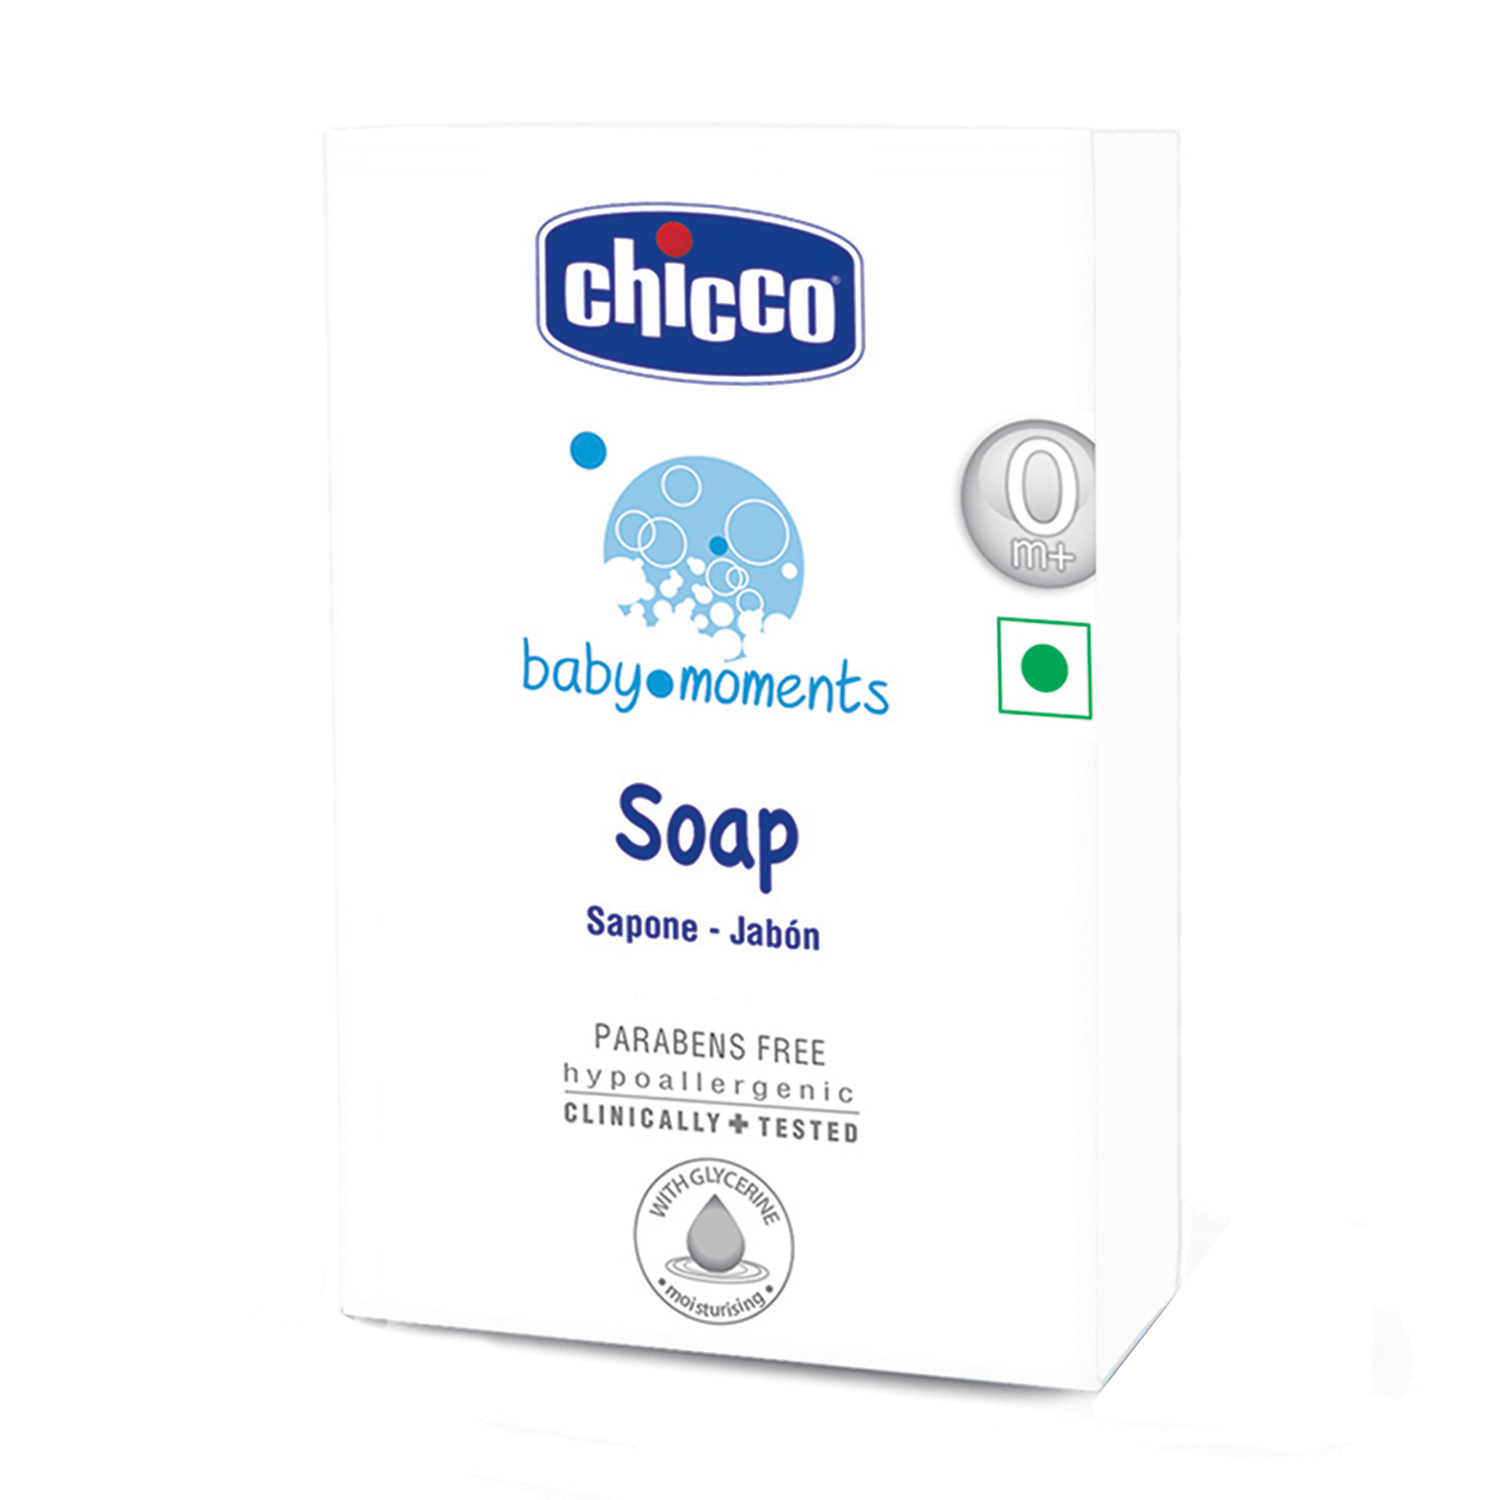 Chicco 28551 Baby Moments Soap - 125 gm